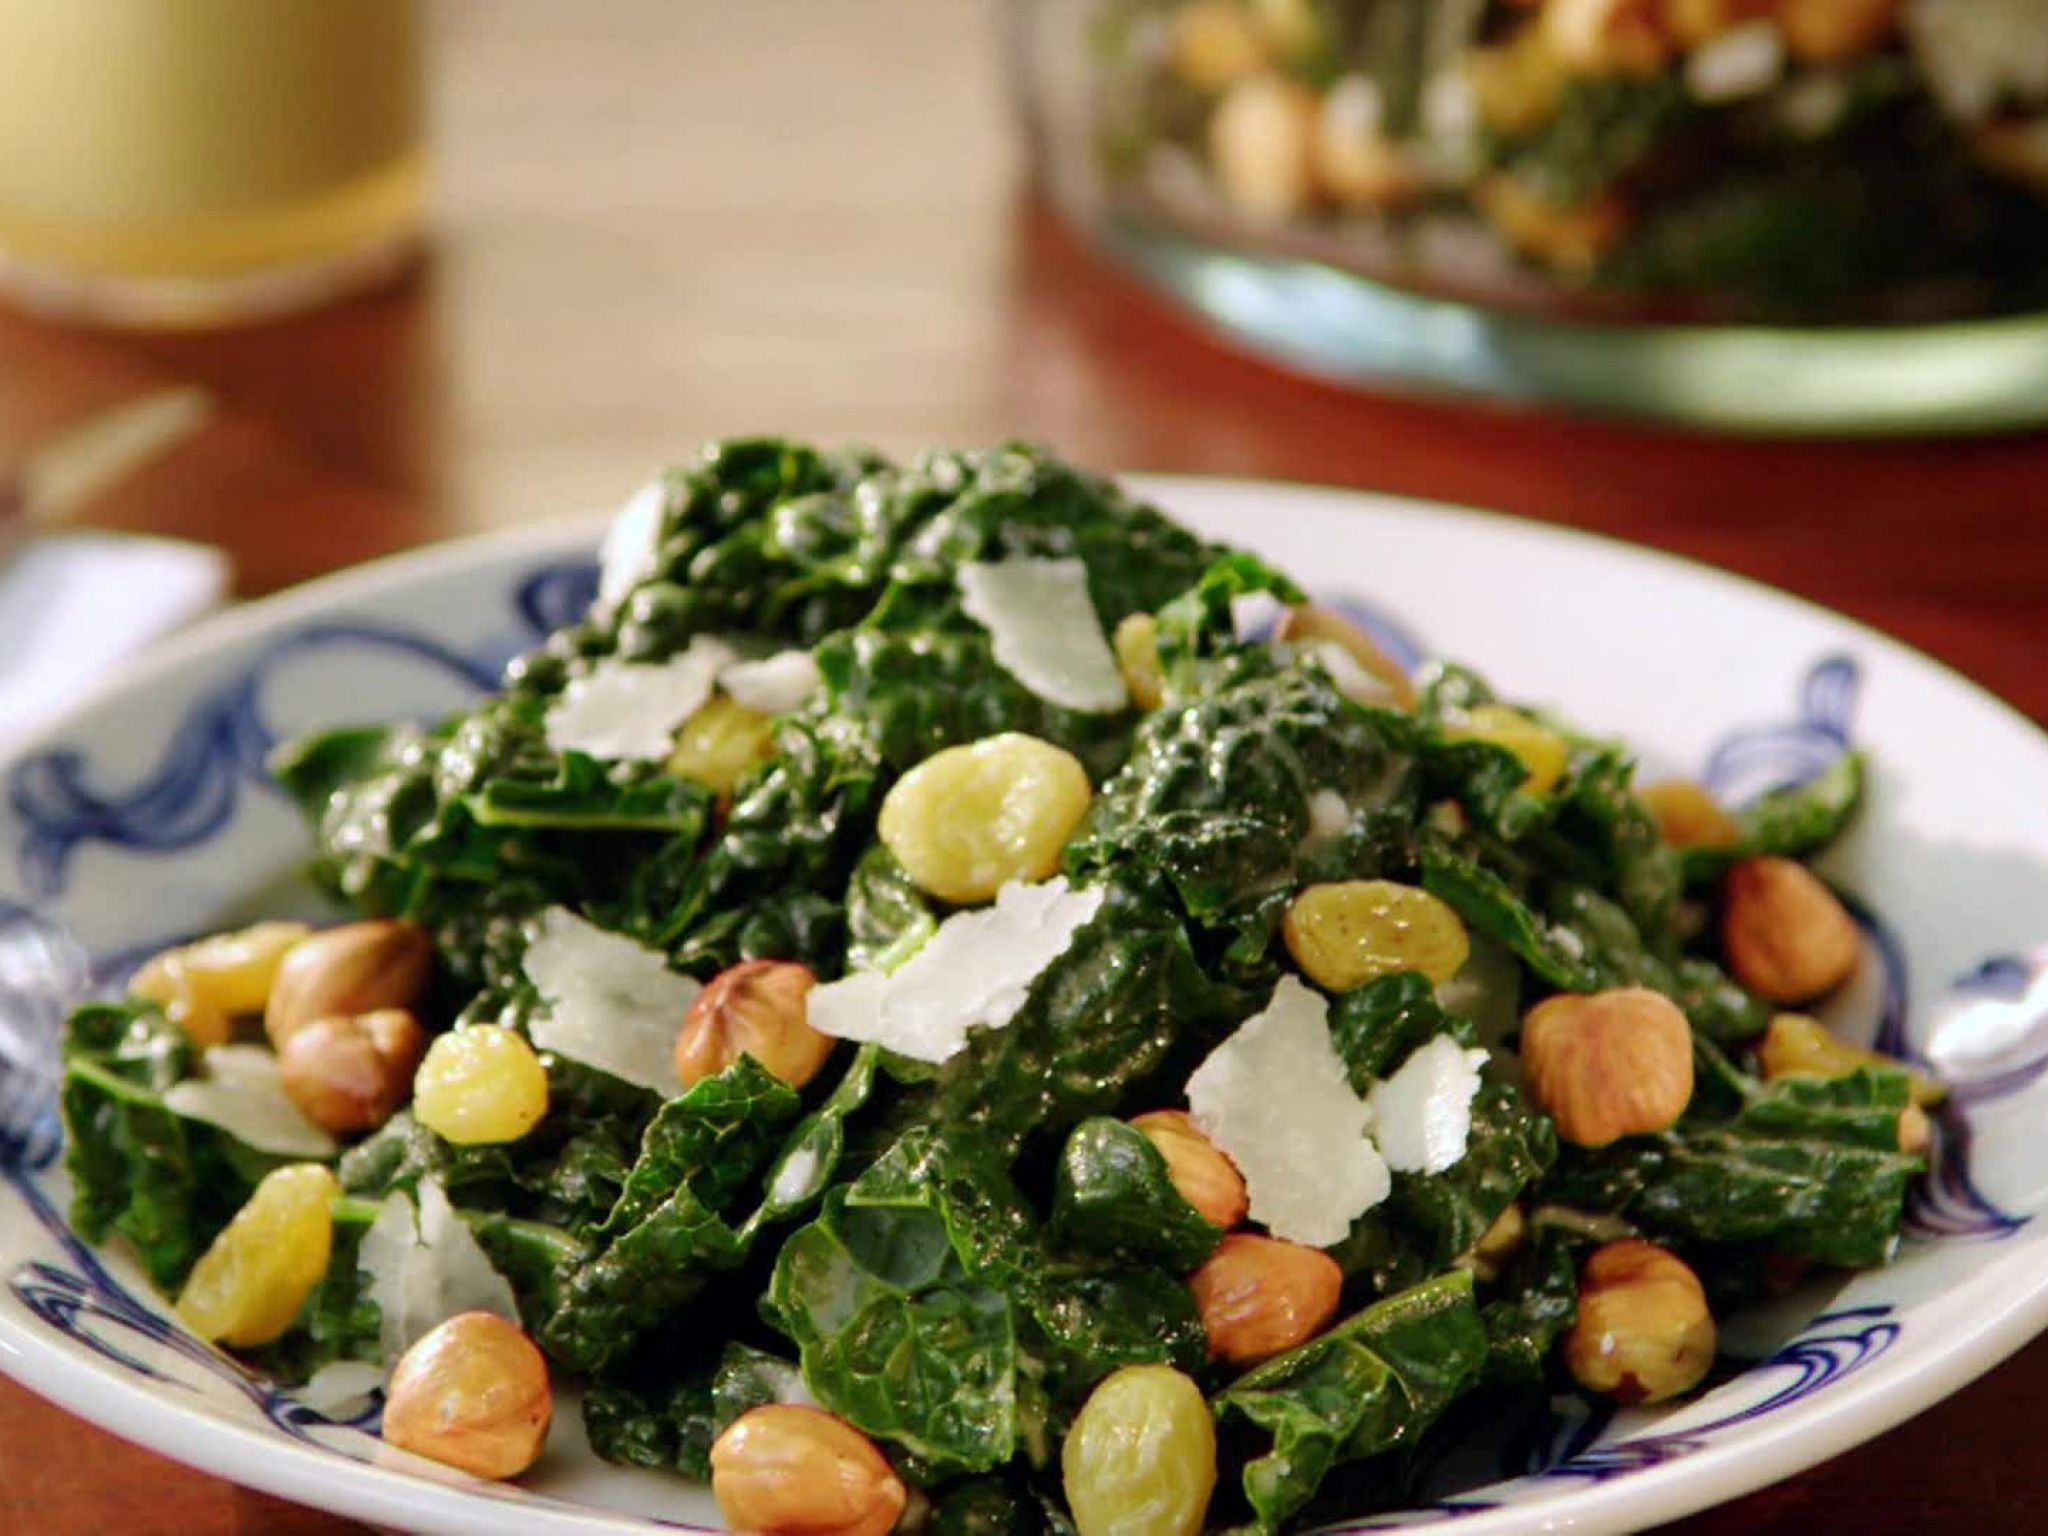 Tuscan Kale Salad With Anchovy Dressing Recipe Food Network Recipes Kale Salad Anchovy Recipes